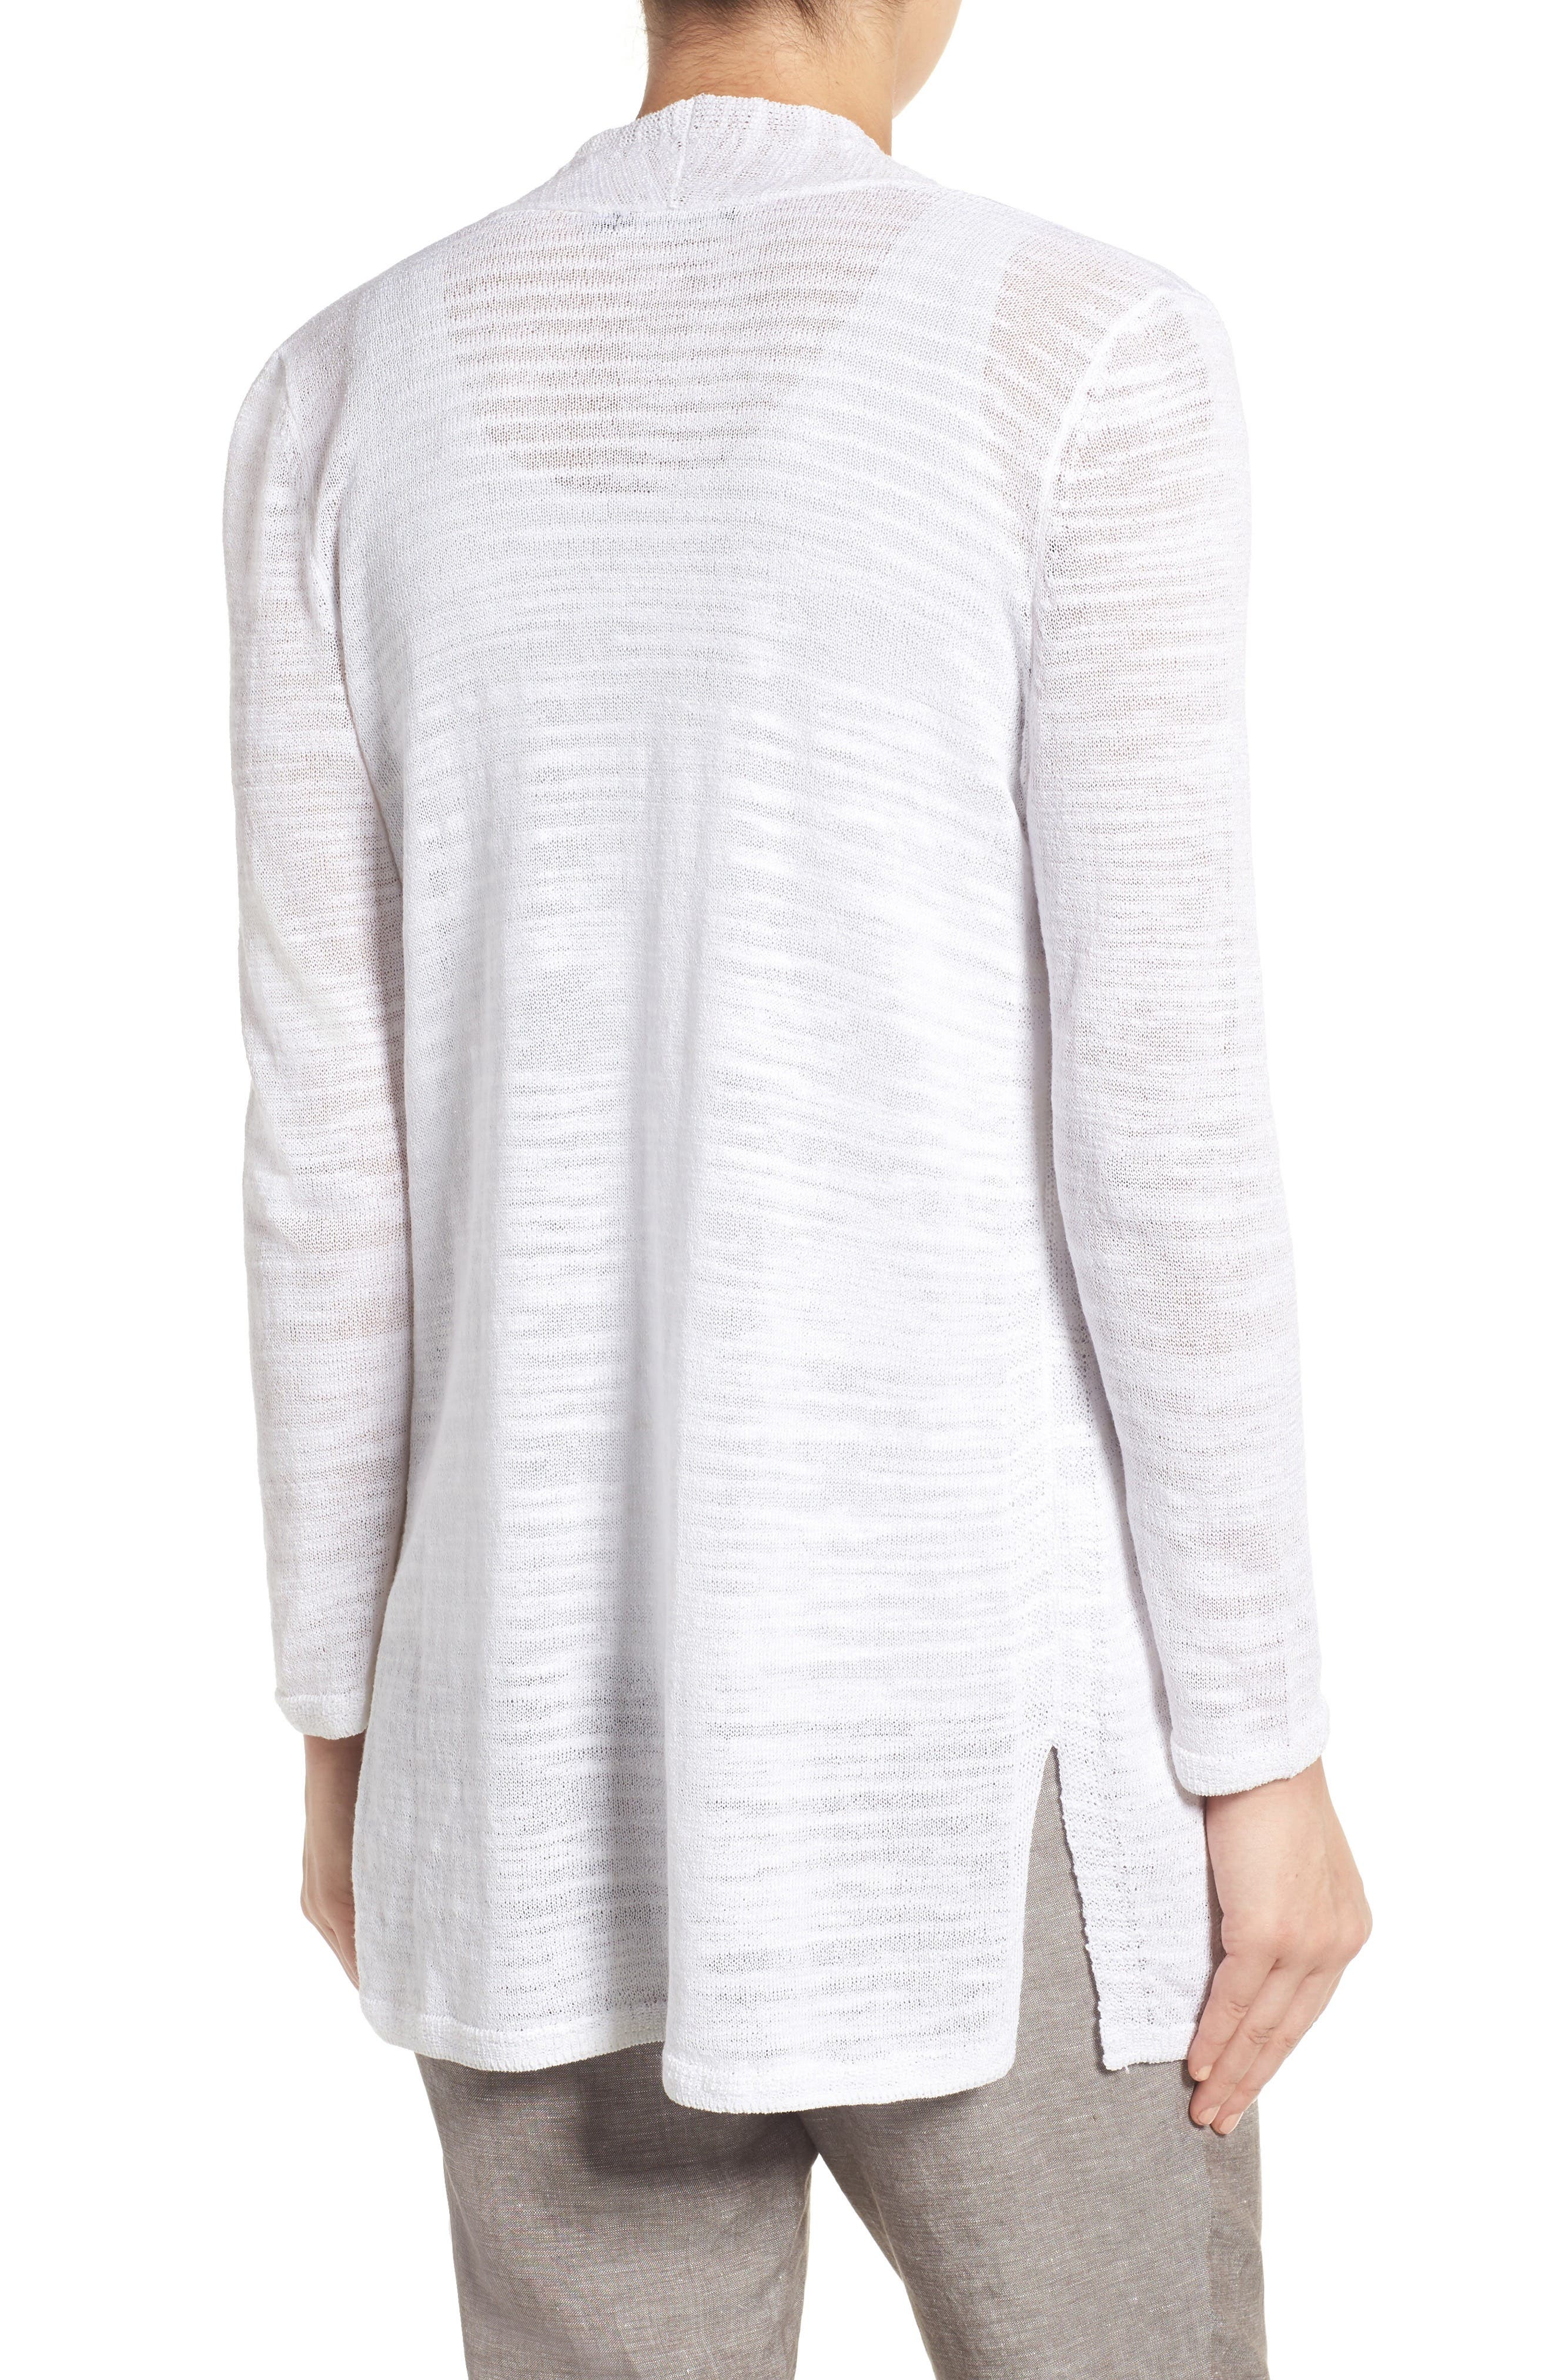 Alternate Image 2  - NIC+ZOE Islet Slub Knit Cardigan (Regular & Petite)